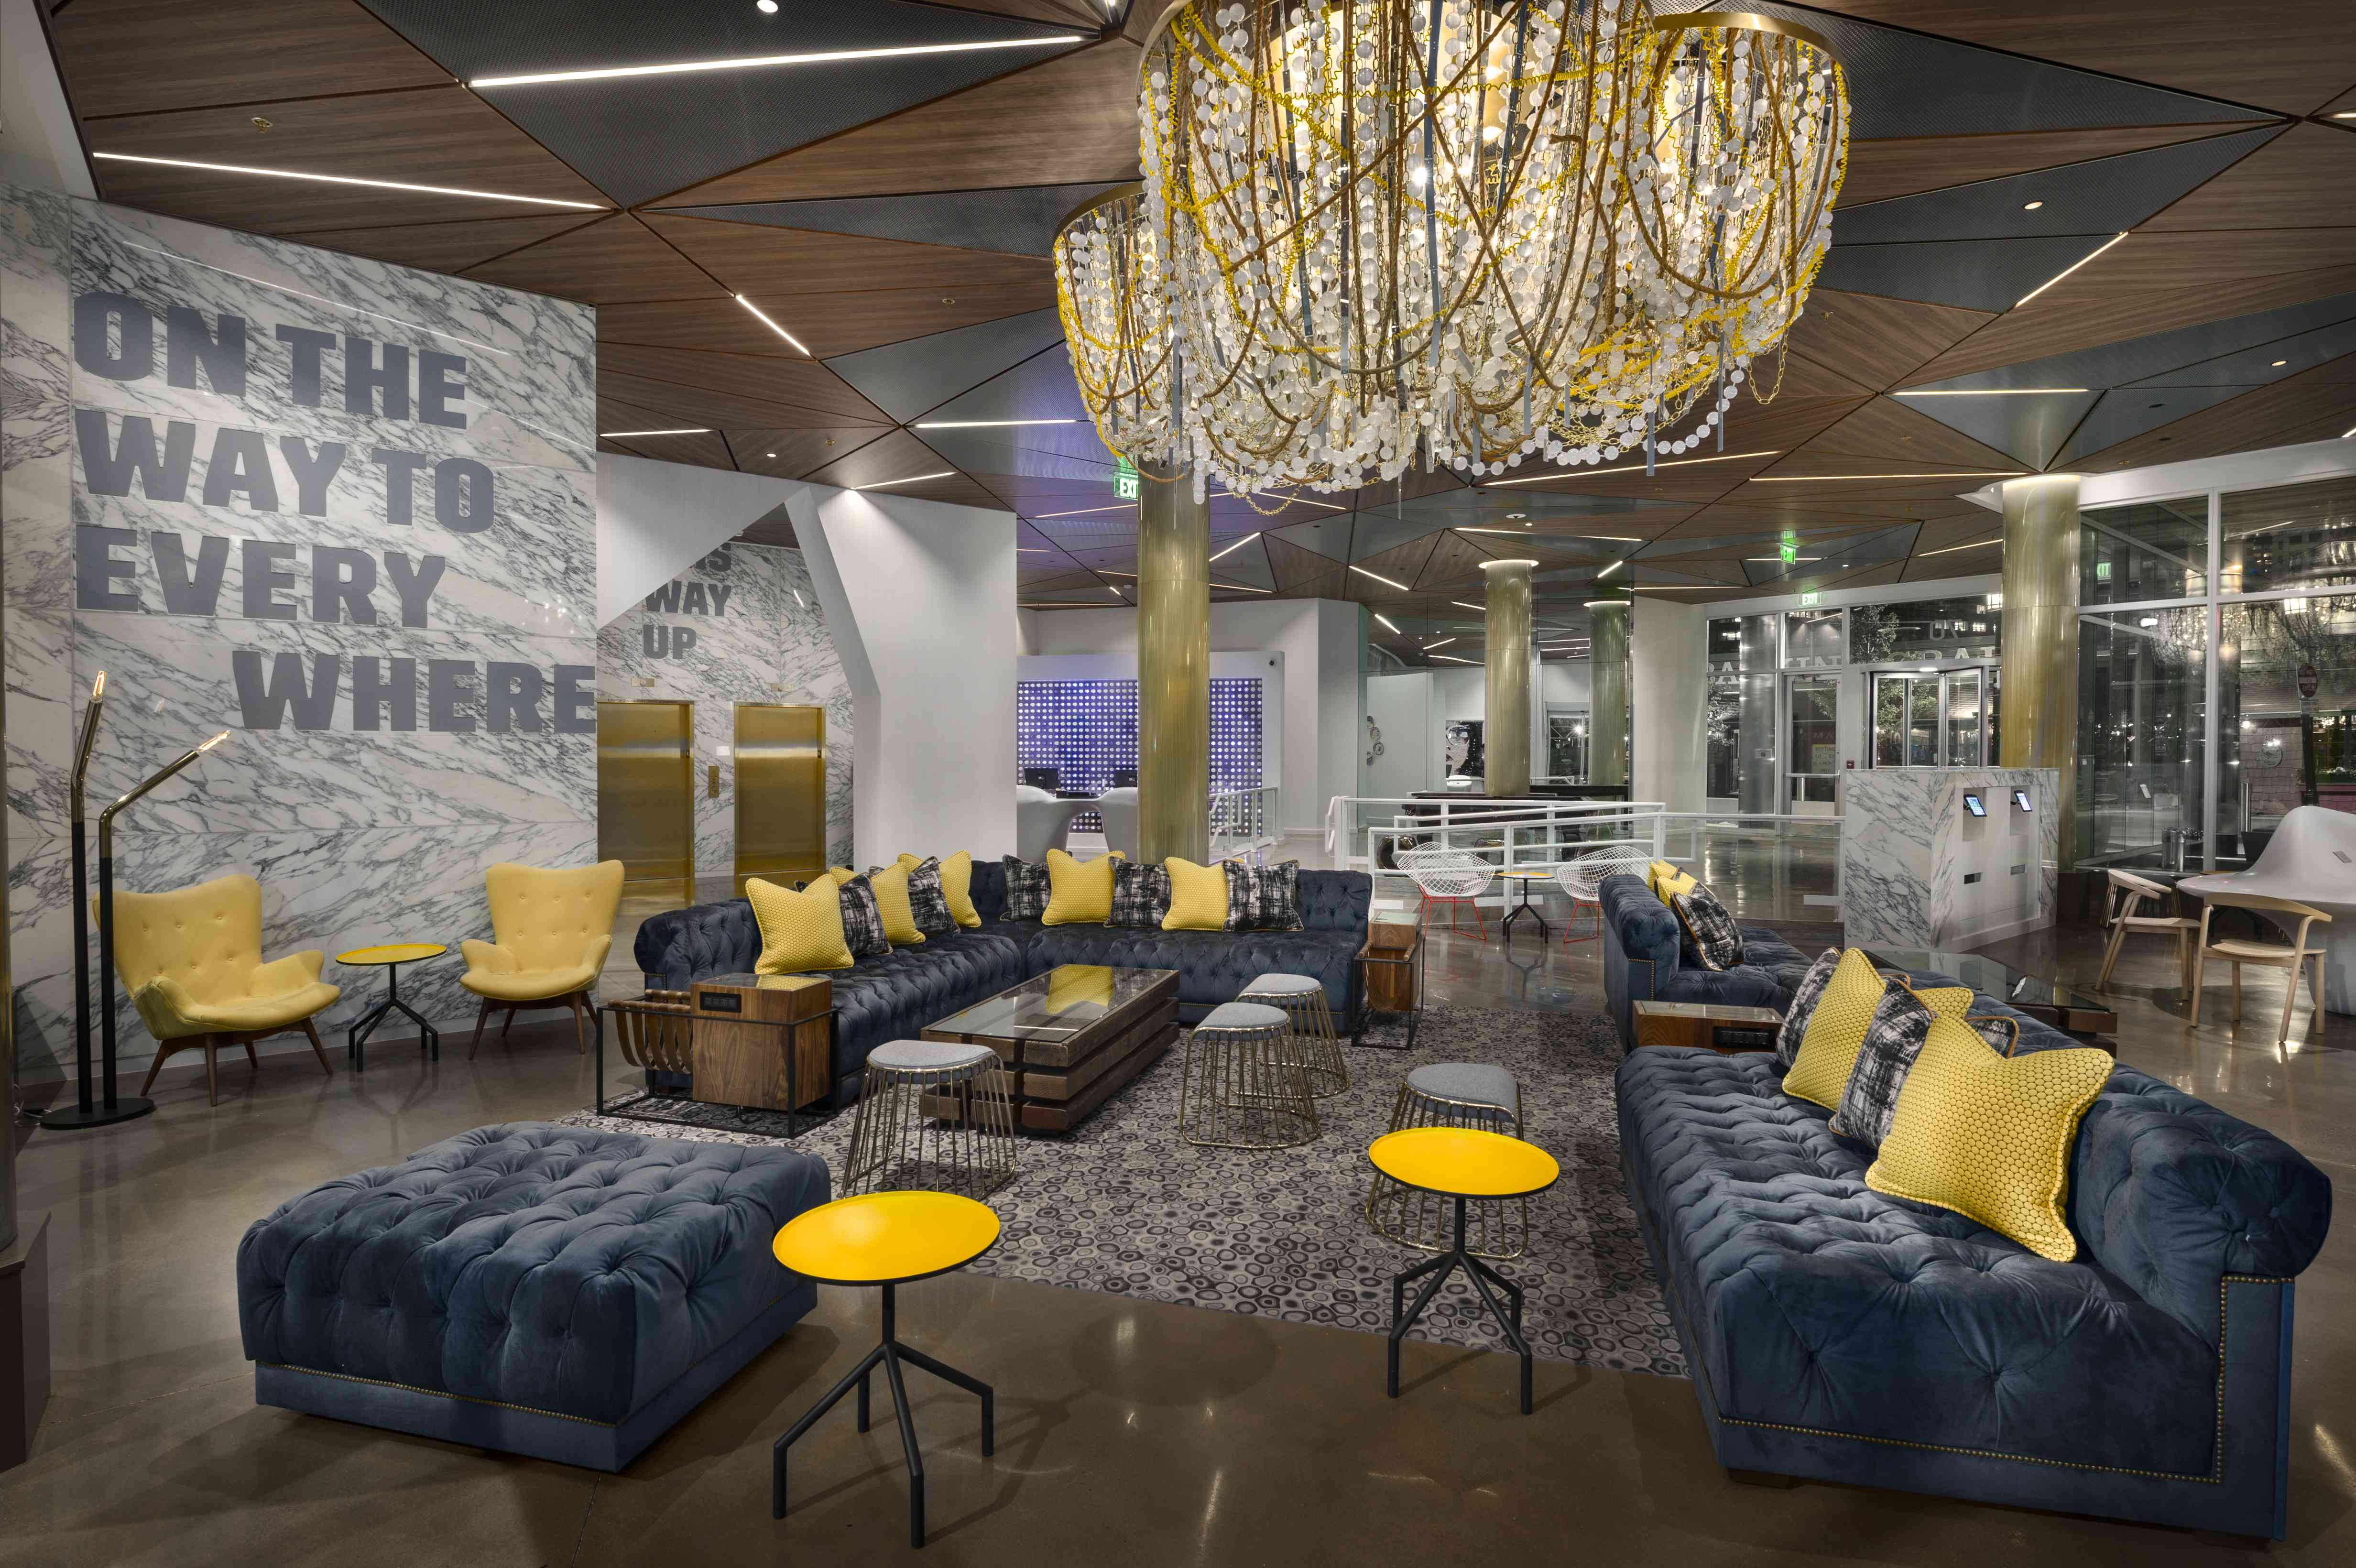 hotel lobby with blue velvet couches, yellow and plaid accent pillows, and a modern chandelier over head